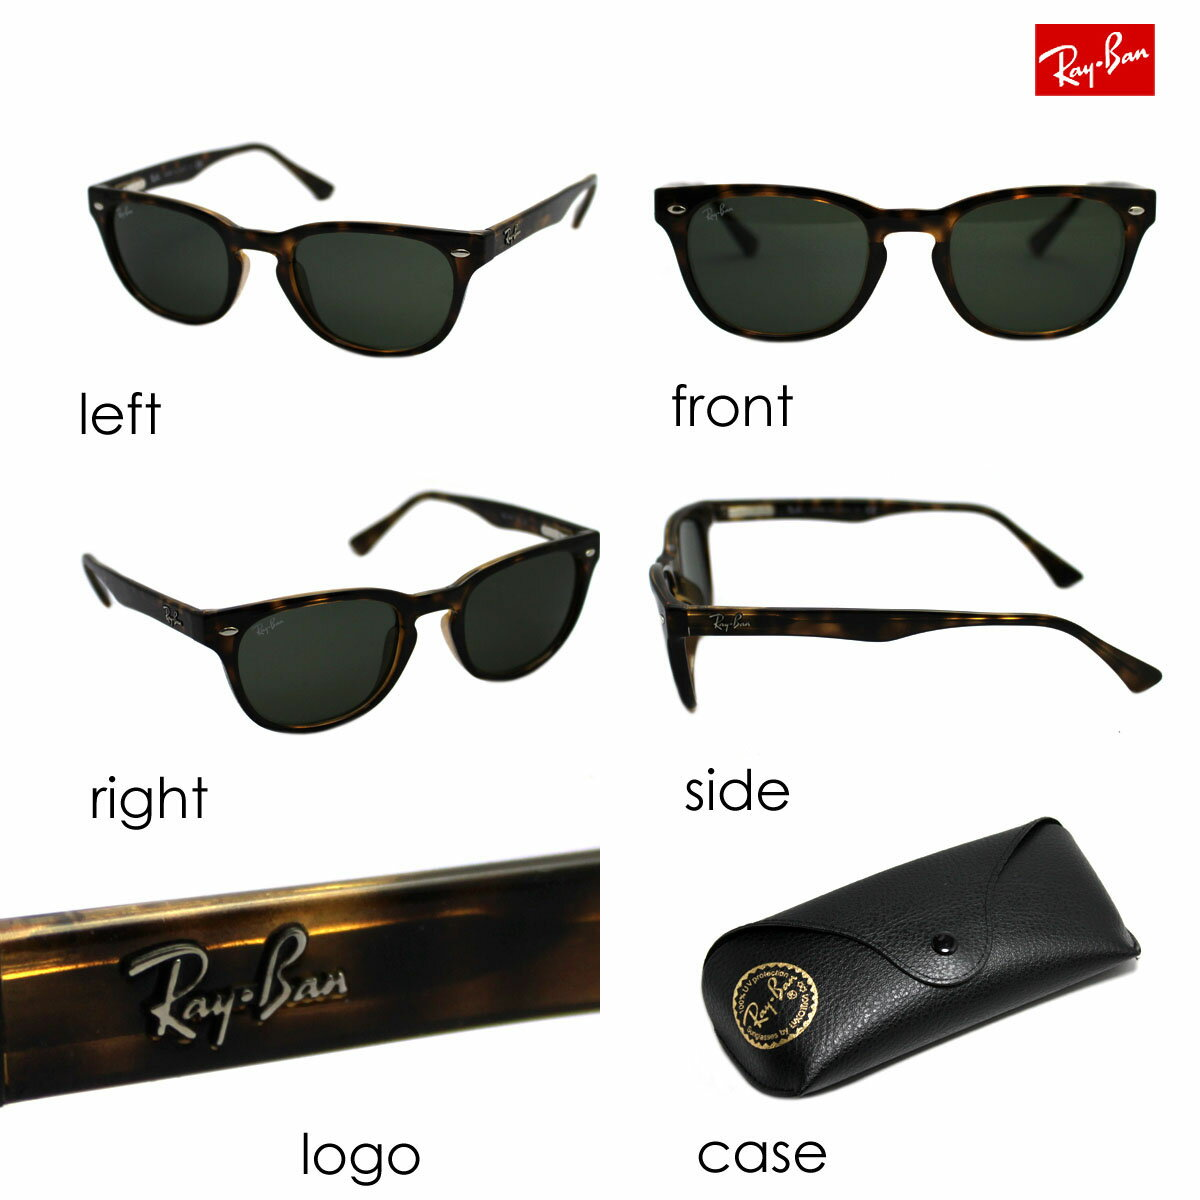 4d0bf1a98d Ray Ban Rb4140 Sunglasses Review « Heritage Malta